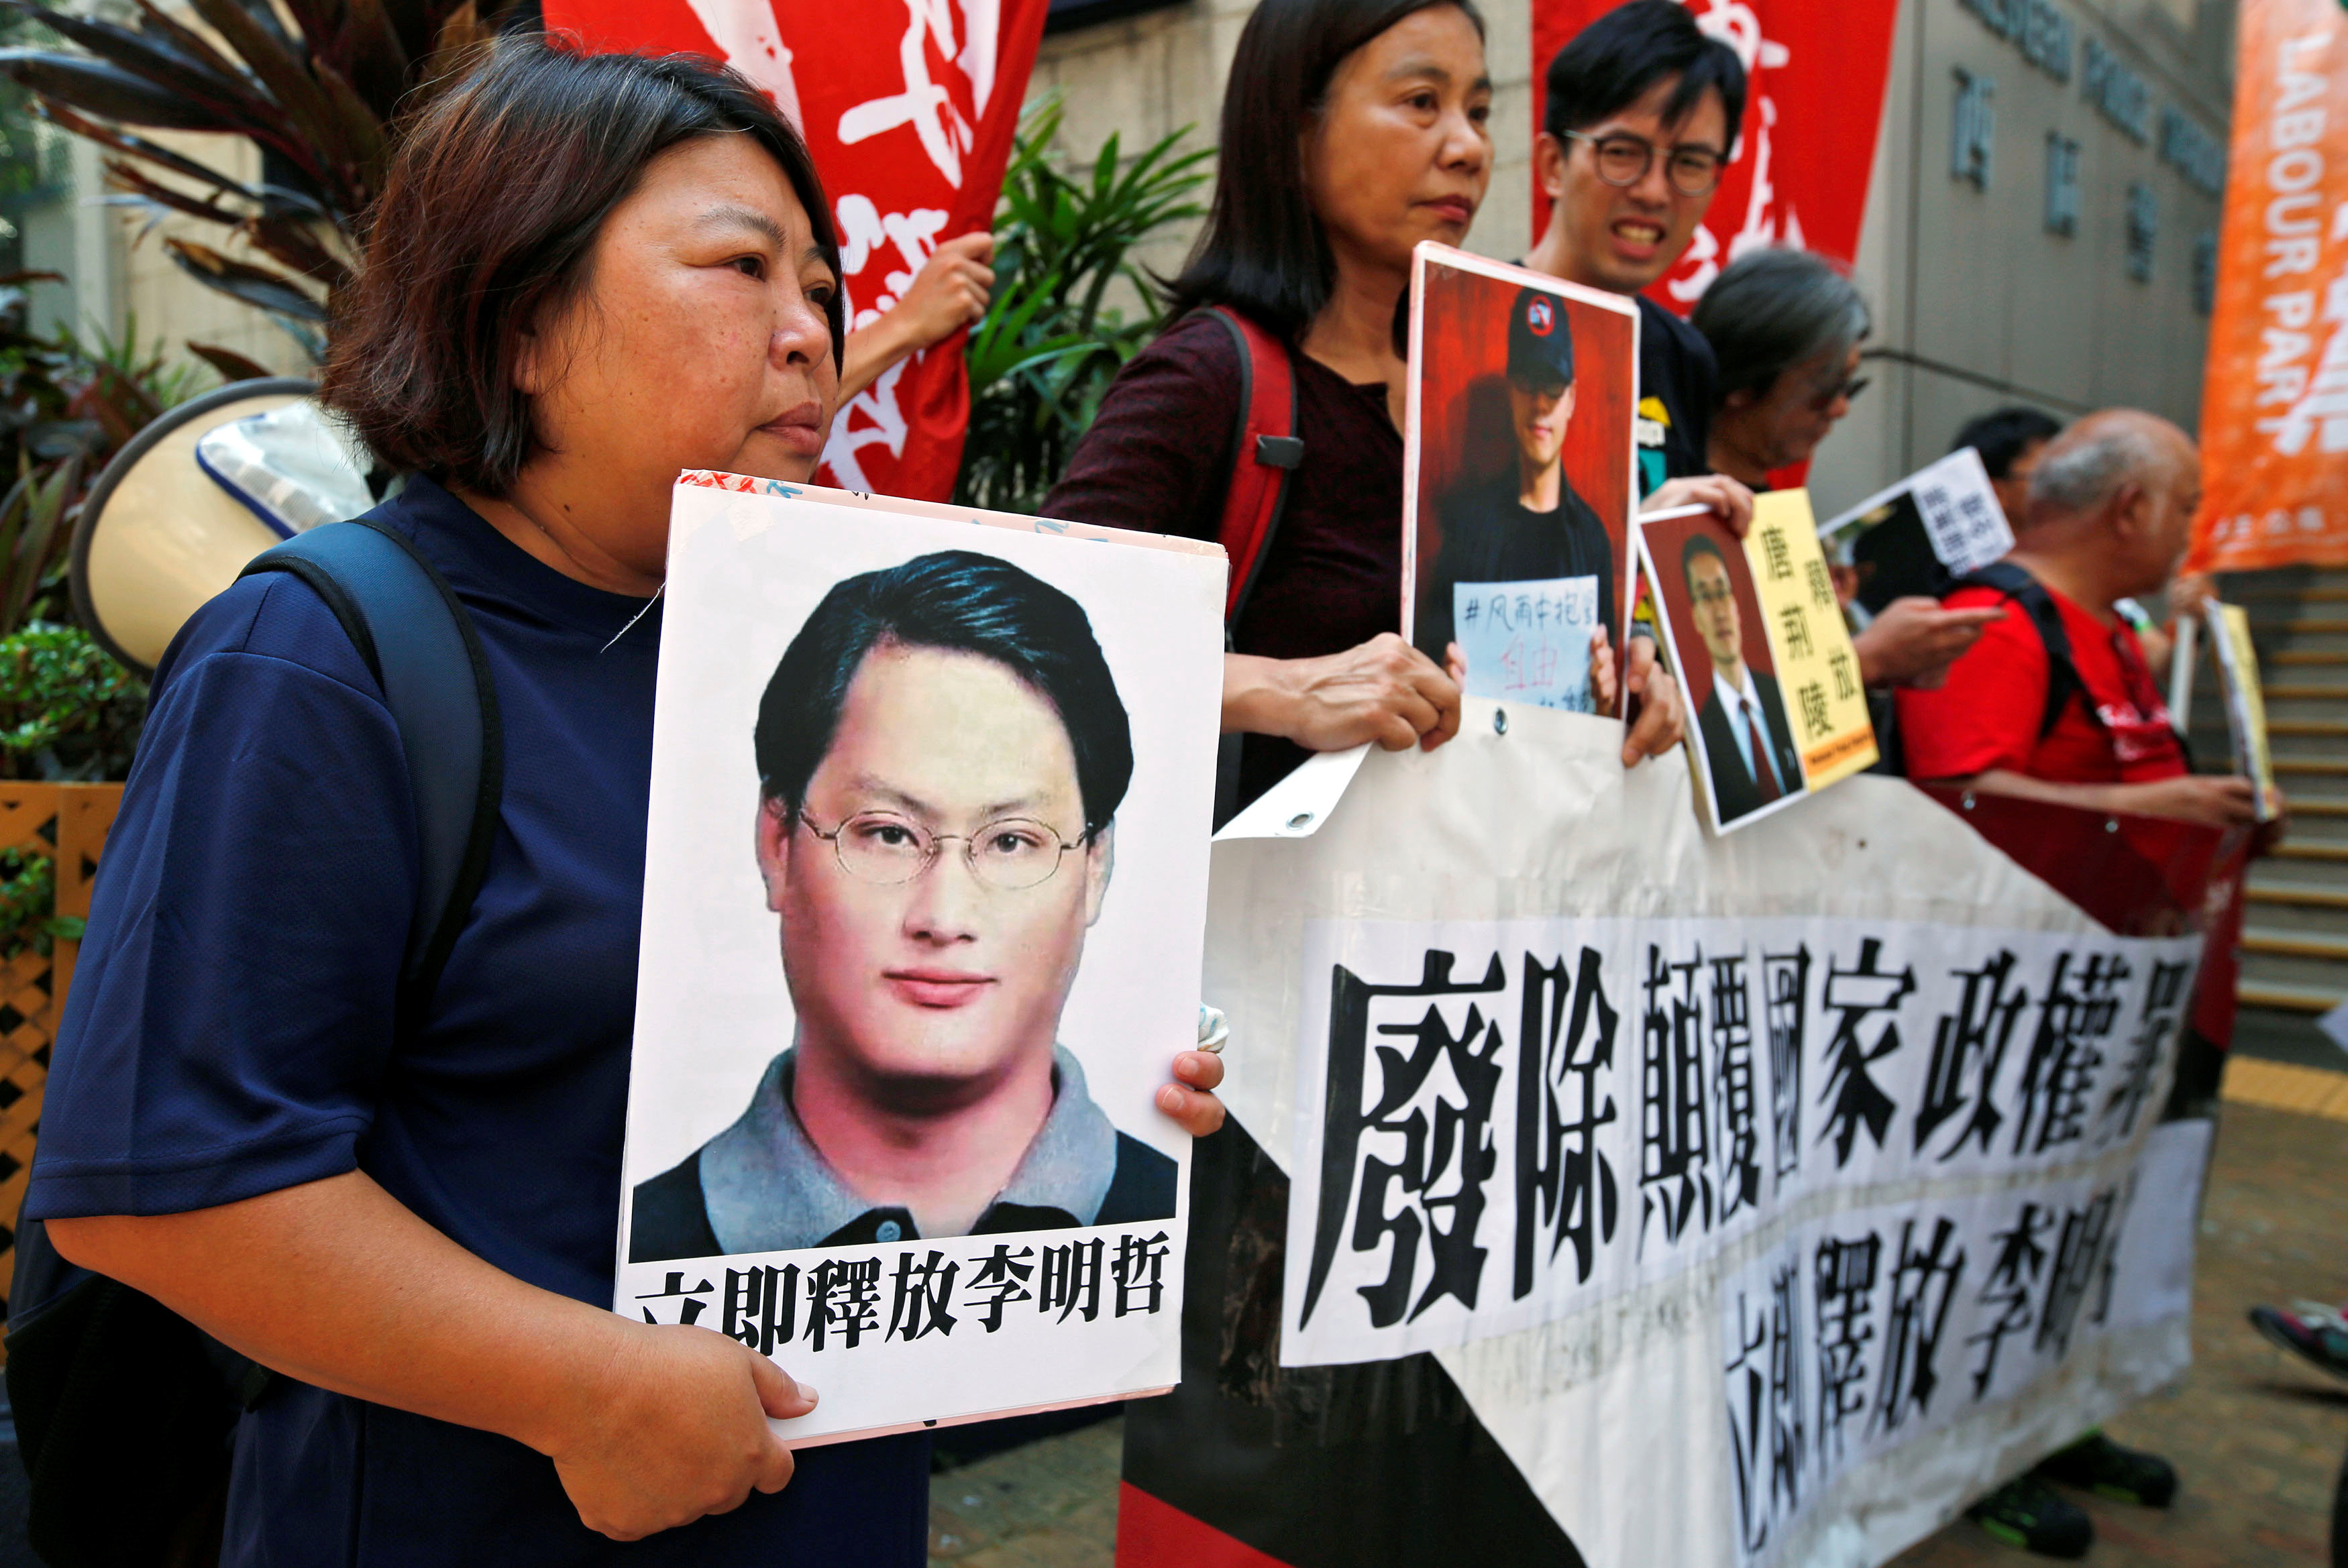 Pro-democracy protesters carry a photo of detained Taiwanese rights activist Li Ming-Che and other activists during a demonstration in Hong Kong, September 11, 2017. — Reuters pic